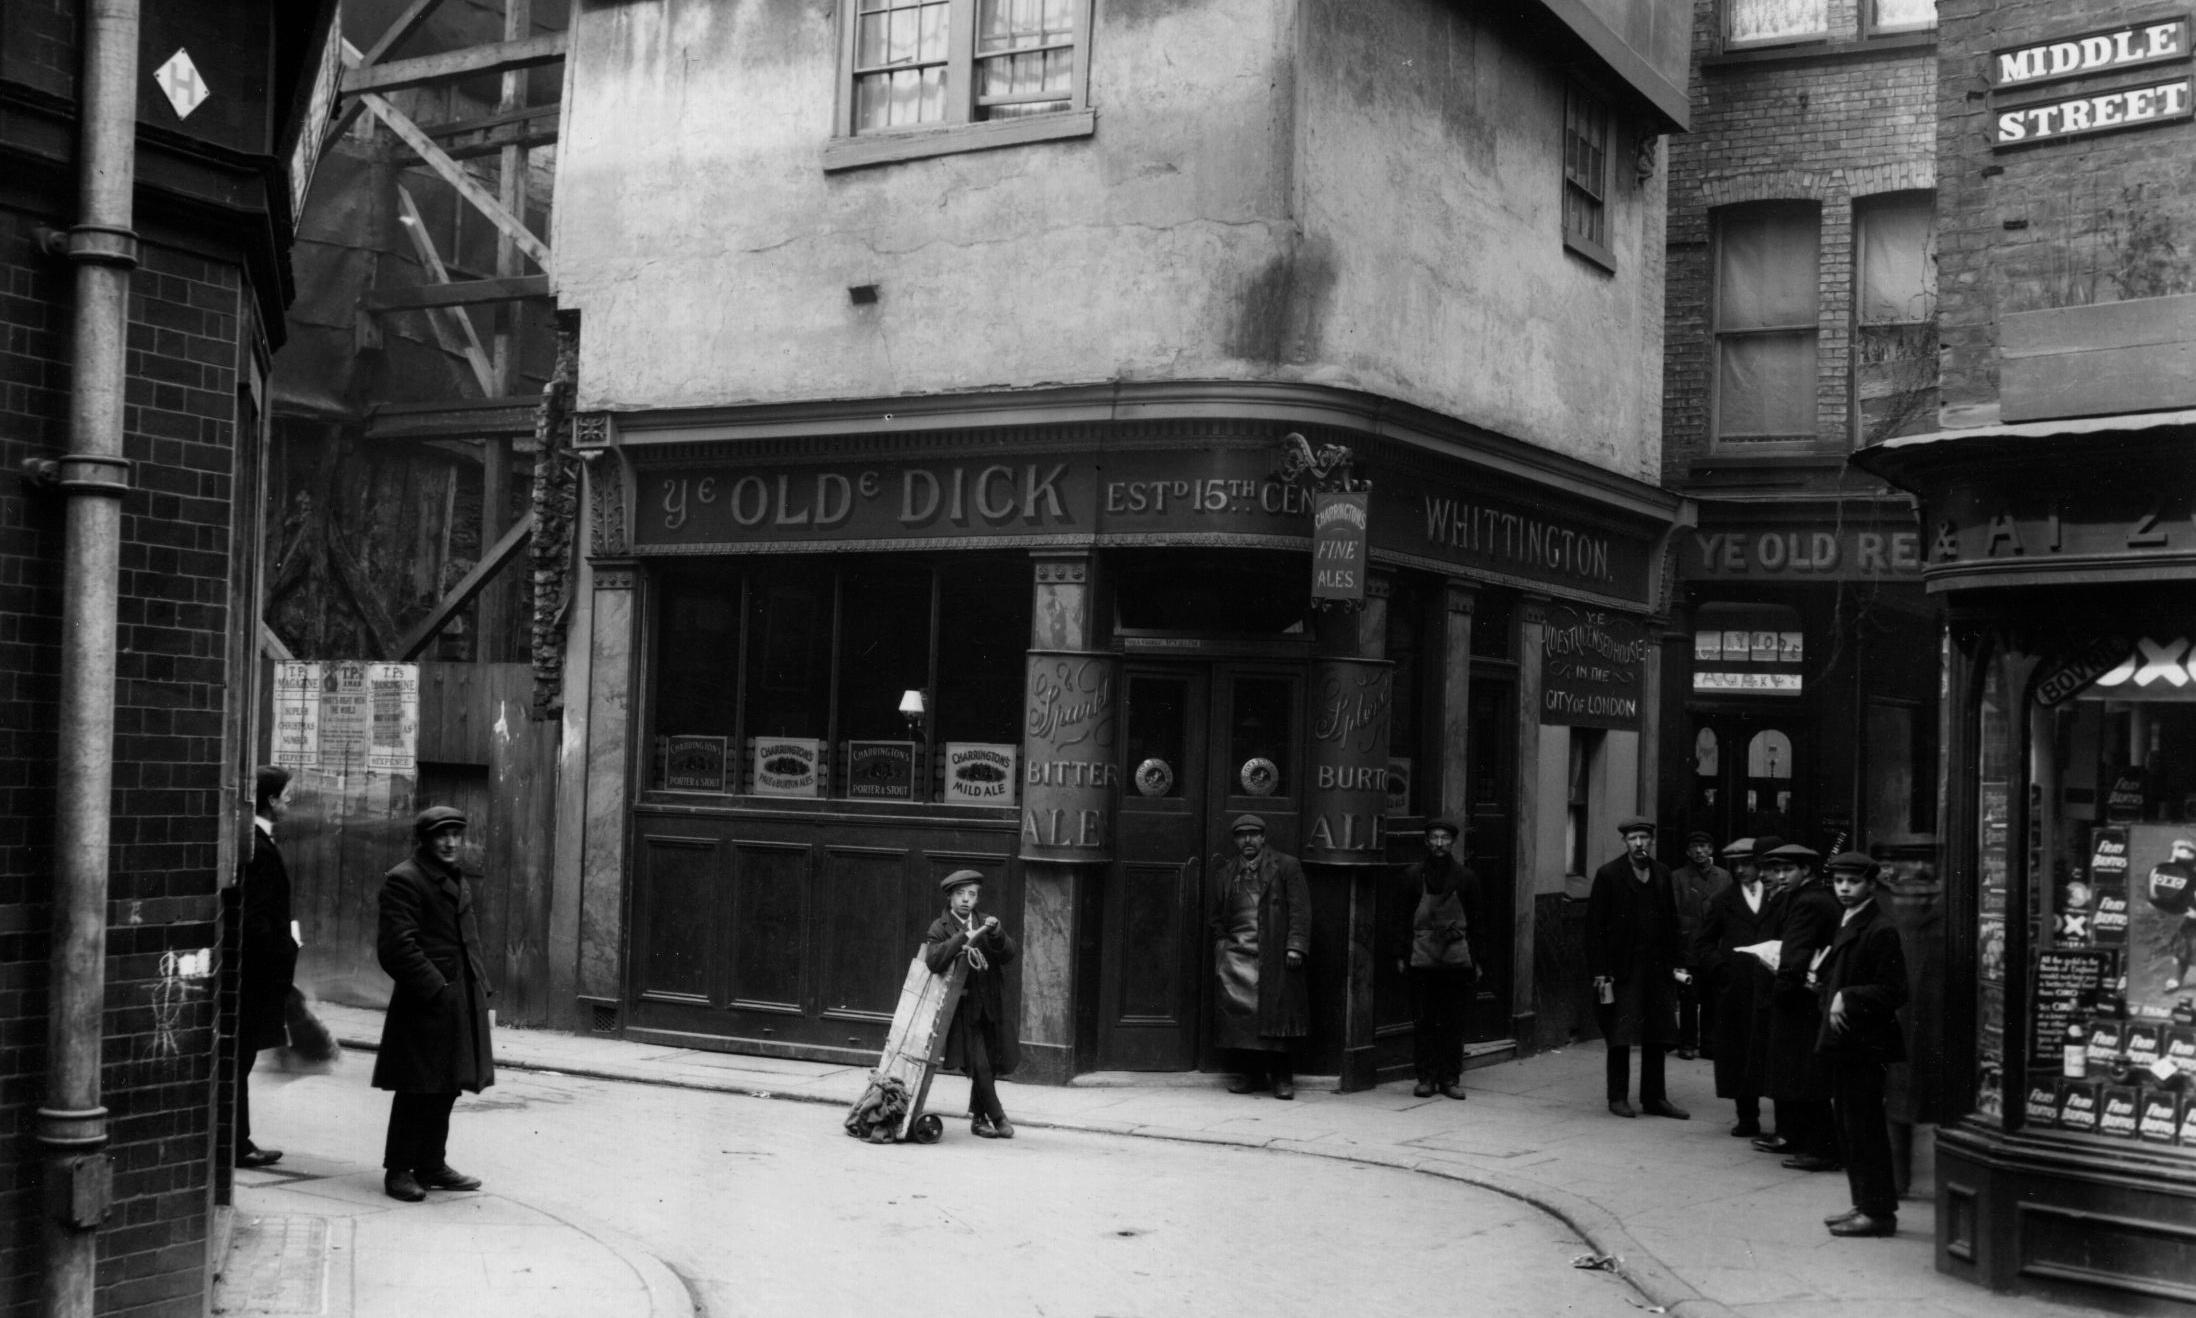 London's 'oldest tavern' threatened with demolition – archive, 18 February 1911